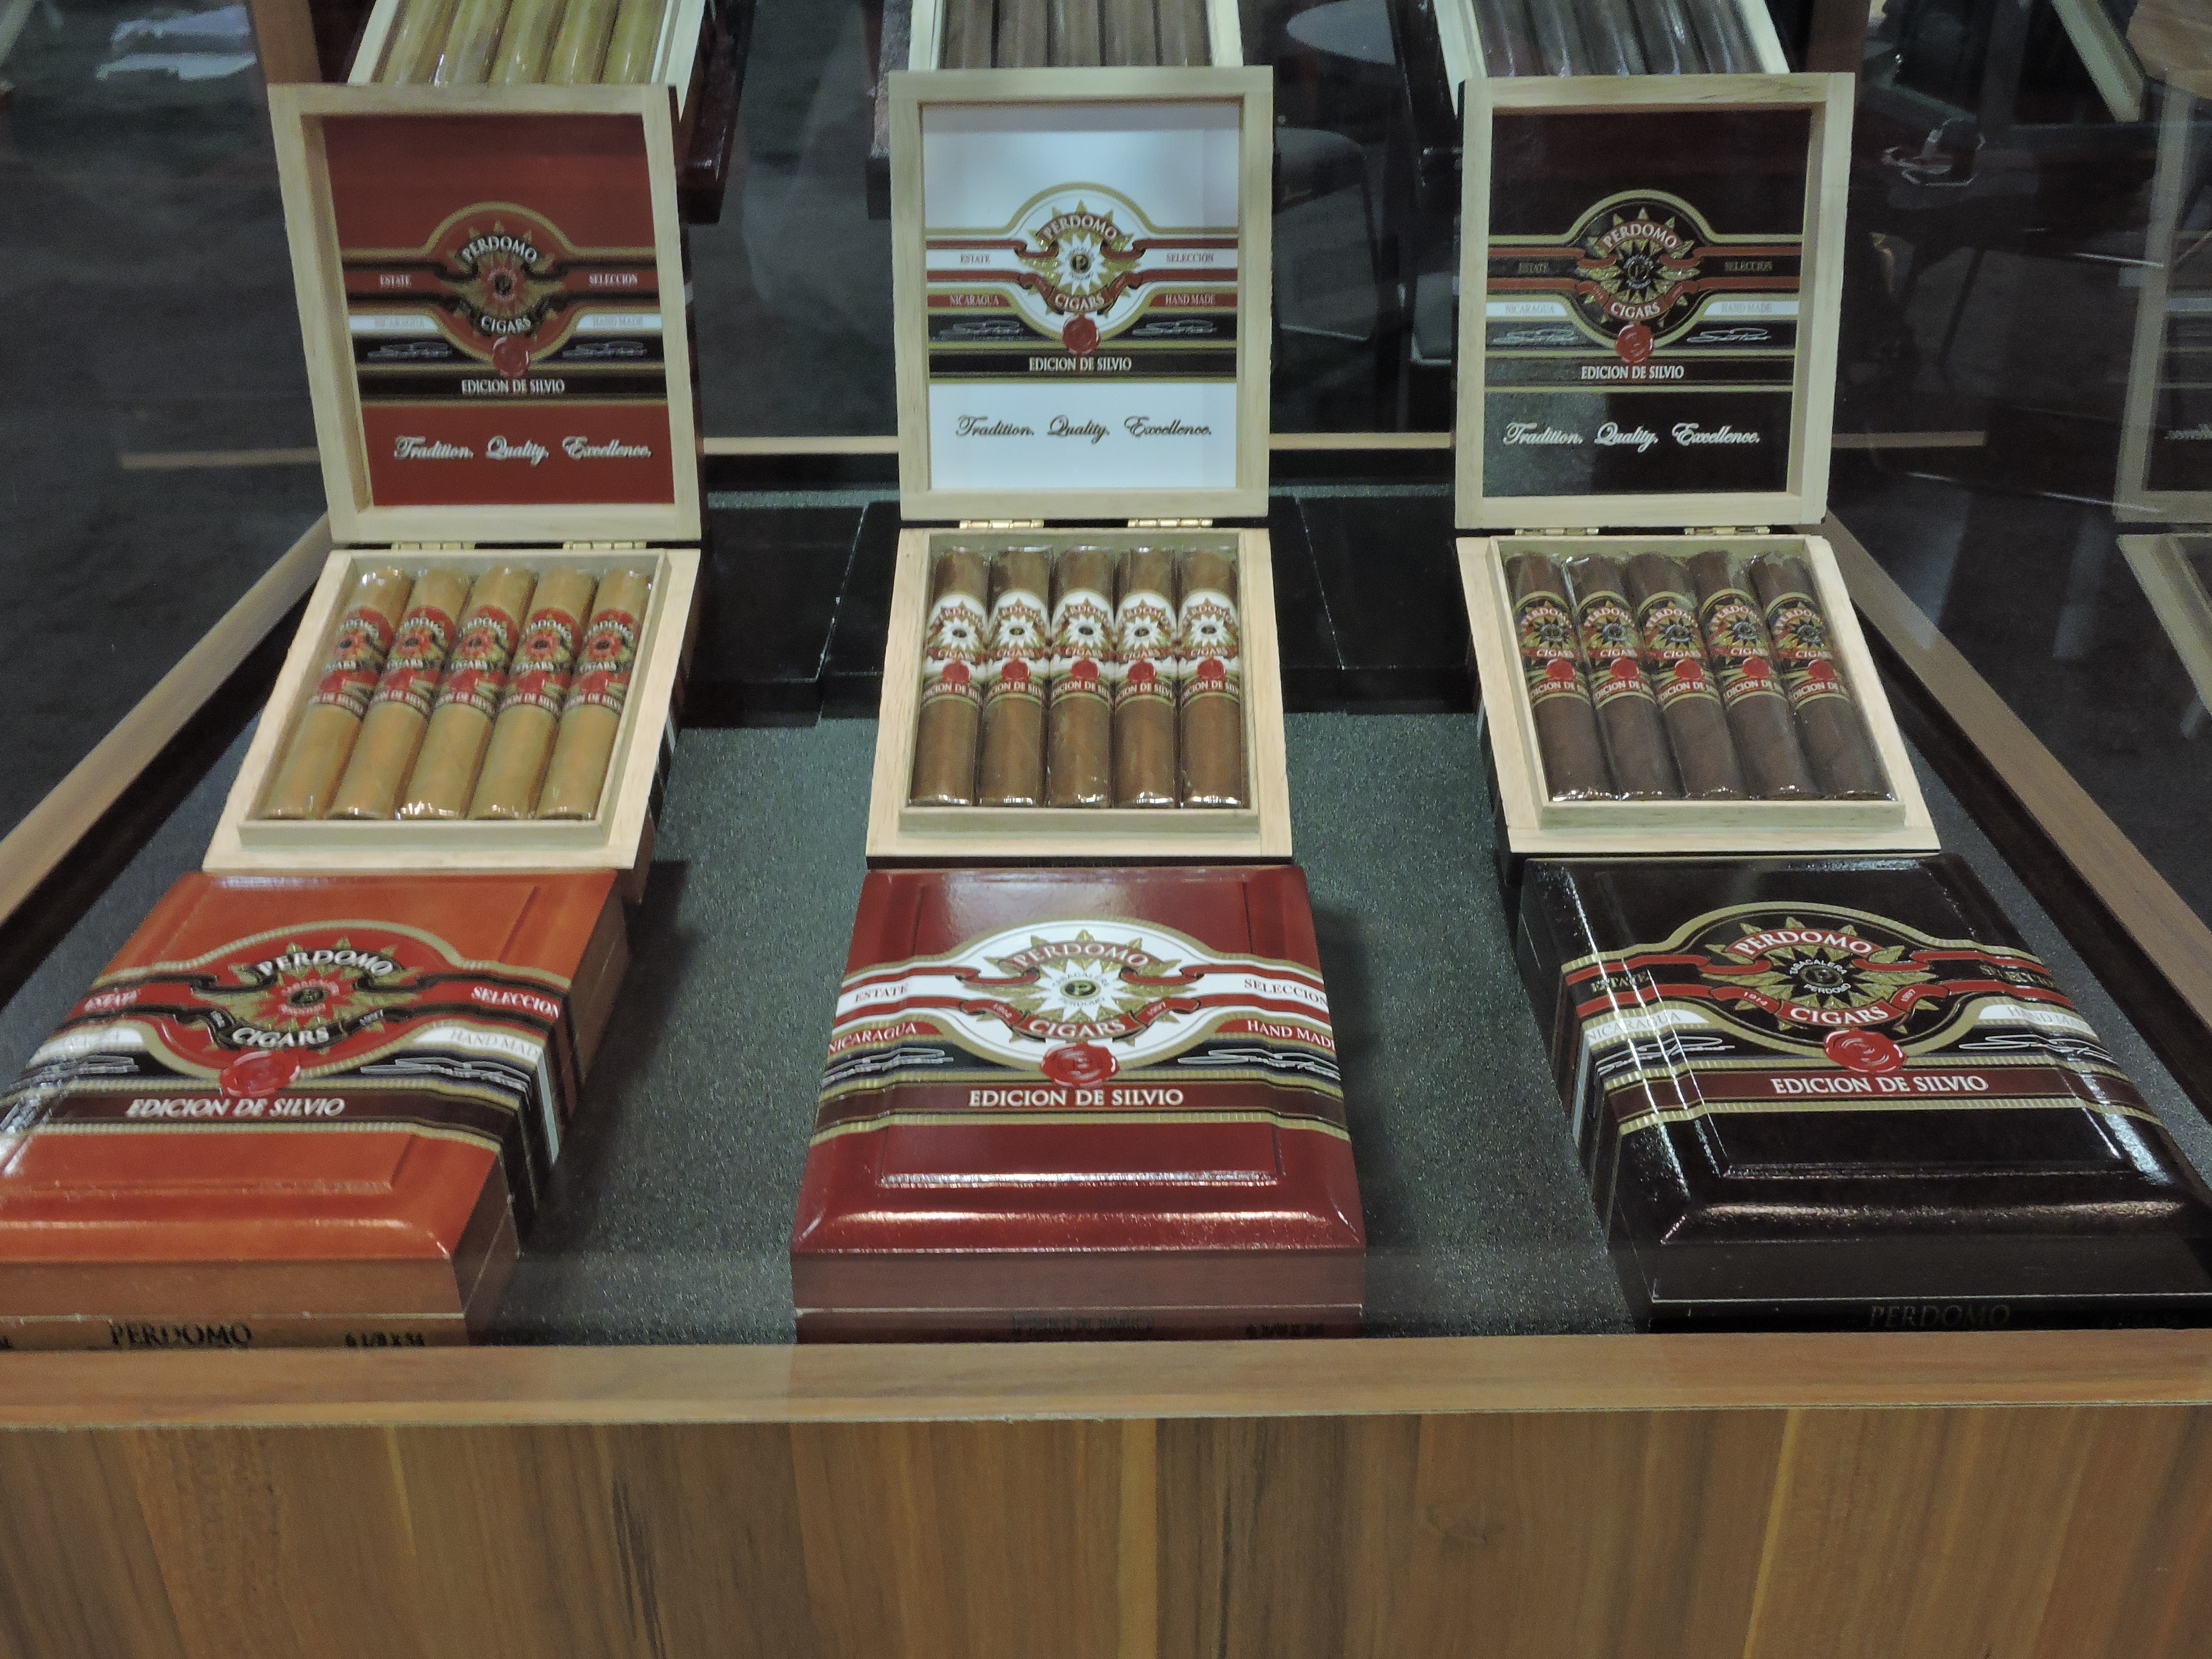 Cigar News: Perdomo Edicion de Silvio Relaunched at 2016 IPCPR Trade Show